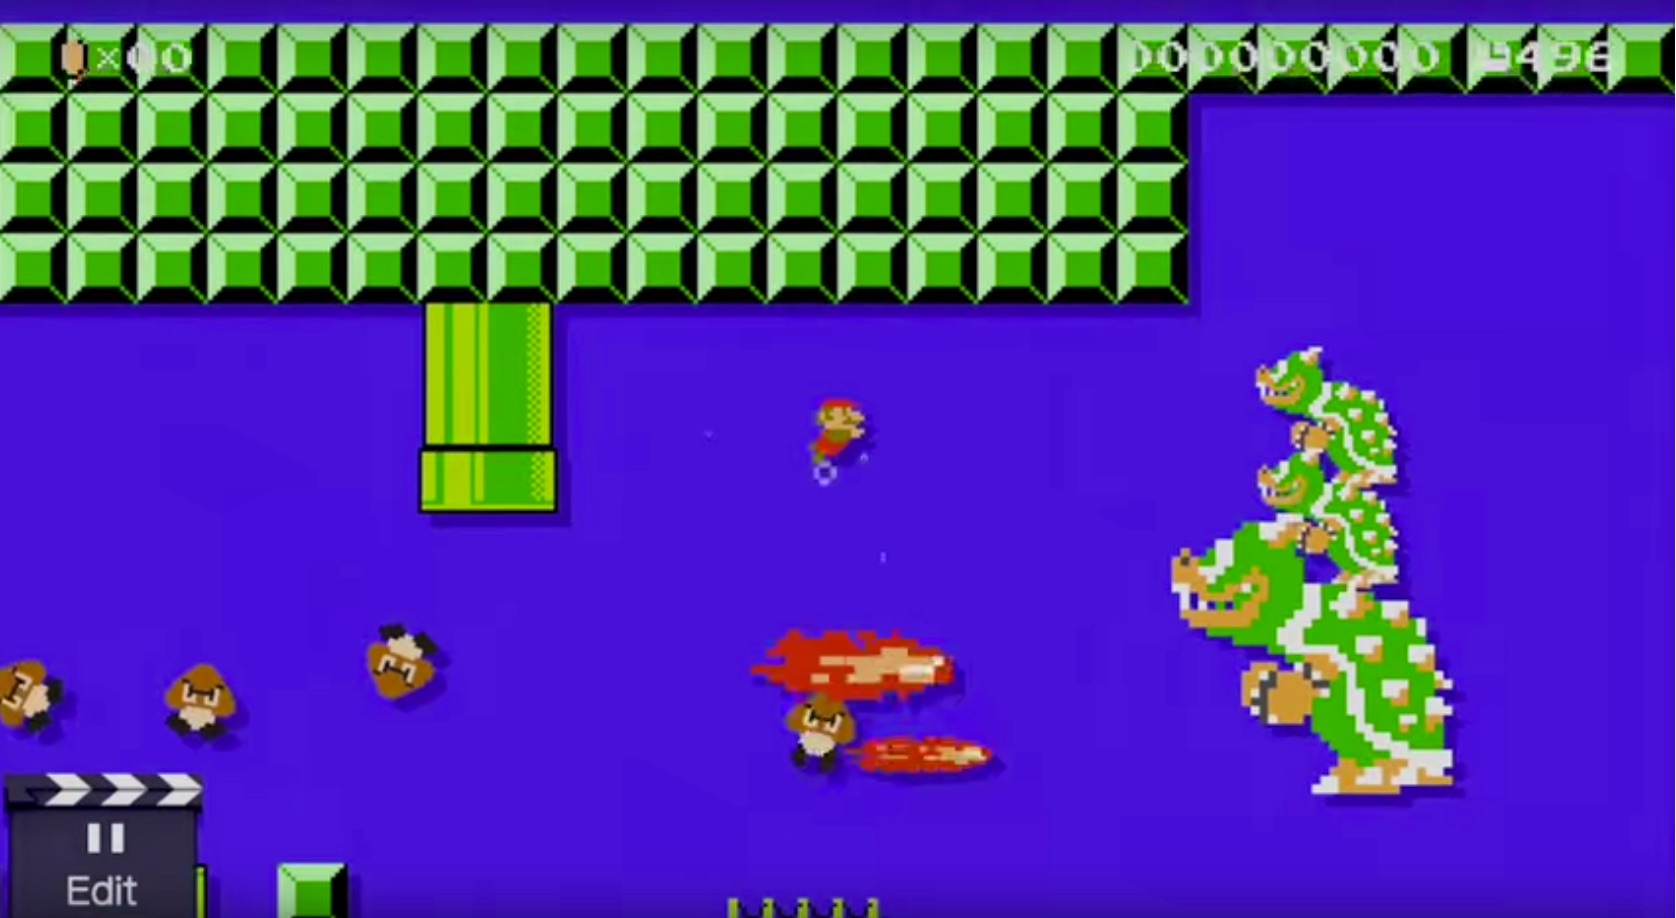 Remember those underwater triple Bowsers from the NES days? No? Me either. SMM revels in the absurd.